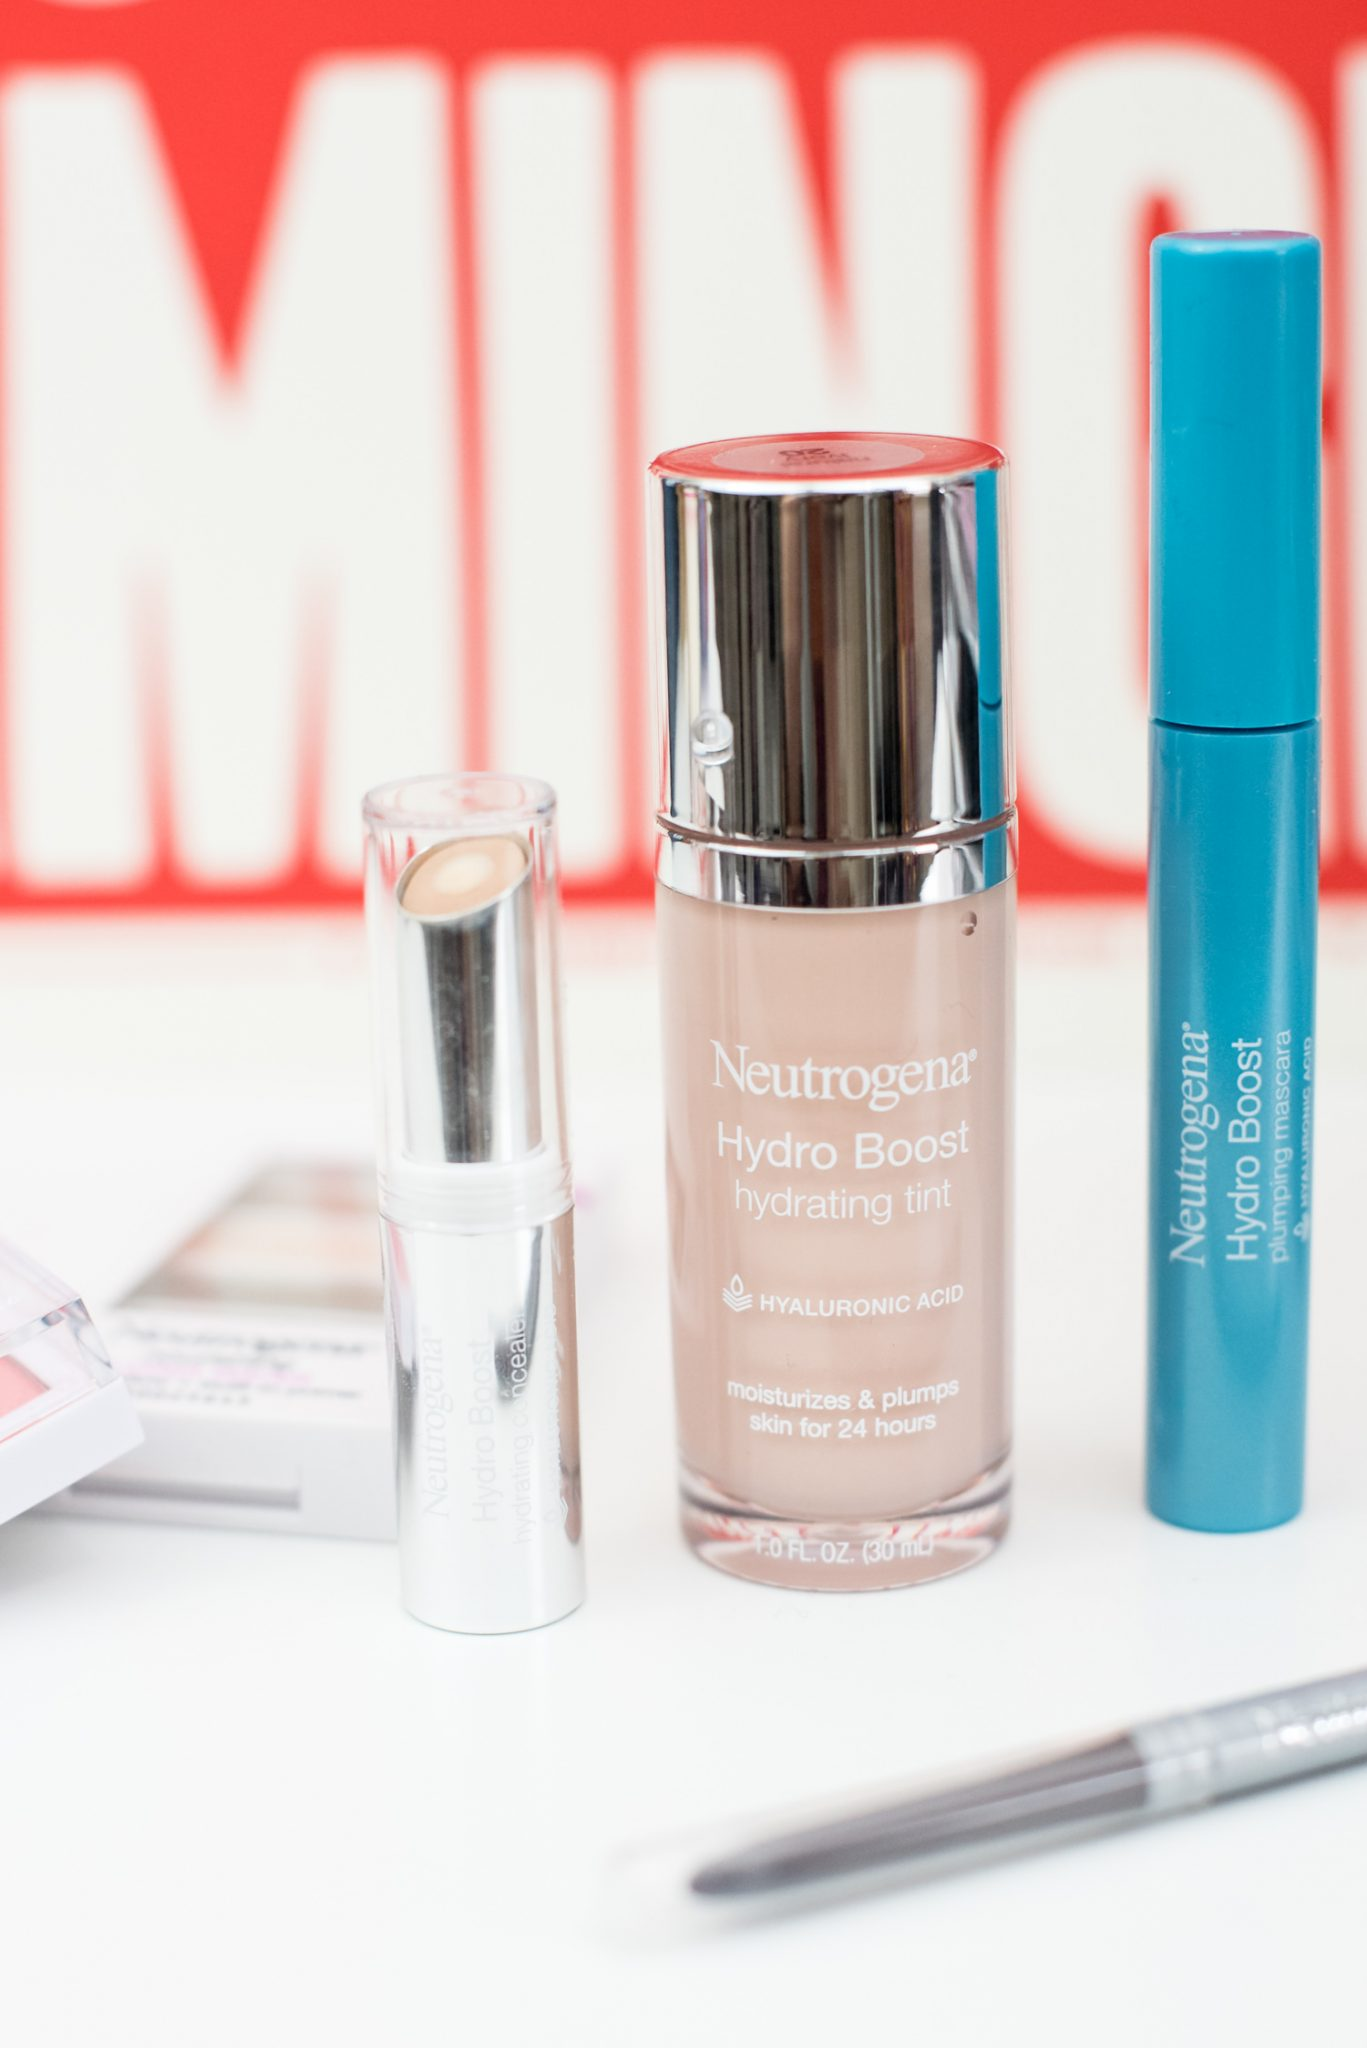 Combat Winter Dry Skin with Neutrogena HydroBoost Makeup #ad // Miss Molly Moon   How to Combat Winter Dry Skin with Neutrogena Hydroboost, featured by top US beauty blogger, Miss Molly Moon